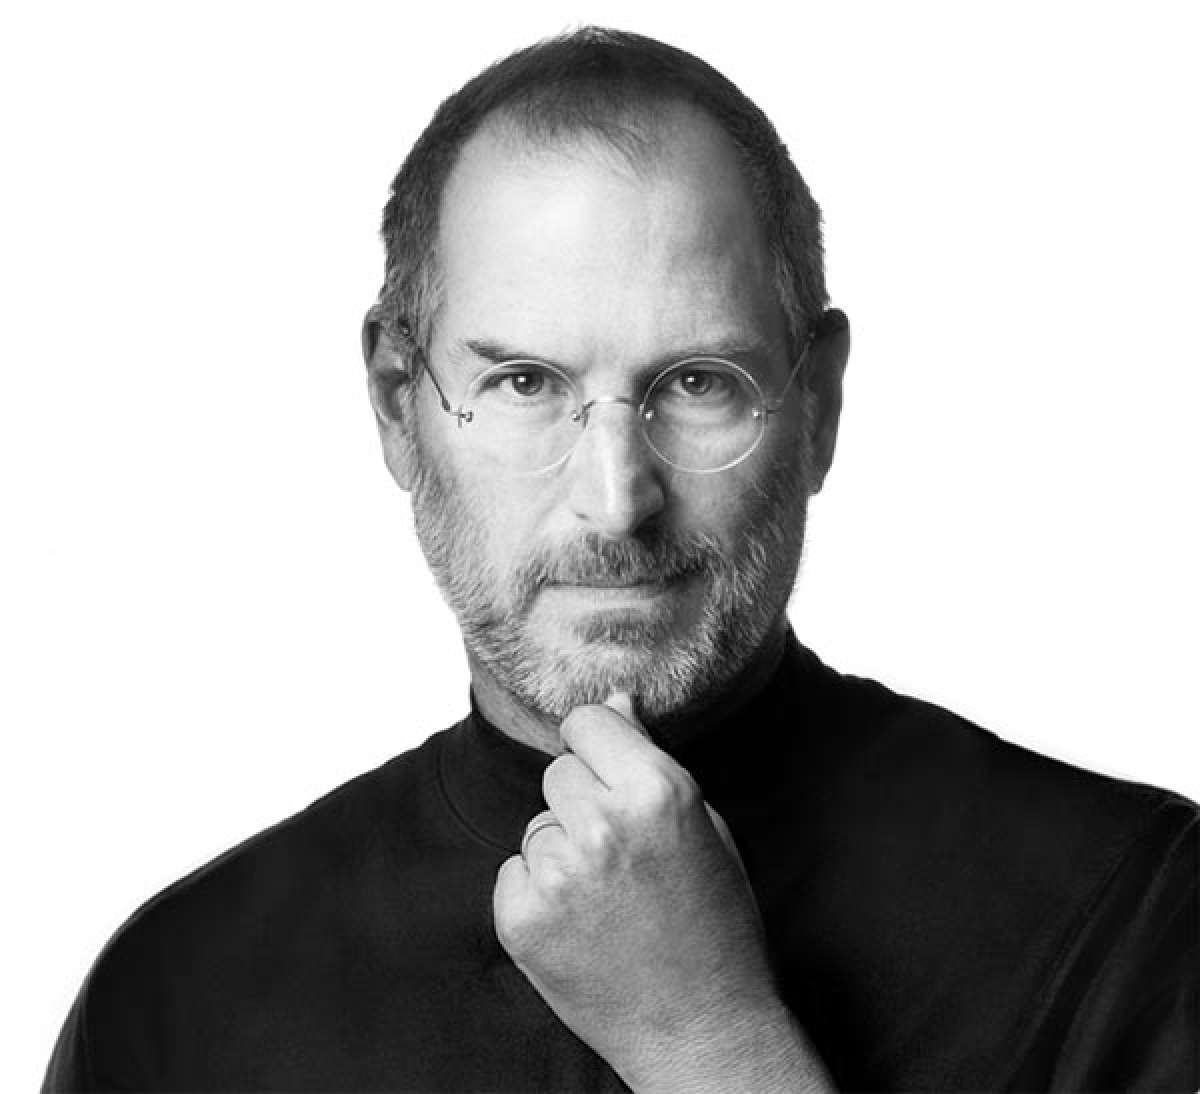 Off Topic: Fallece Steve Jobs, padre y fundador de Apple. Descansa en Paz